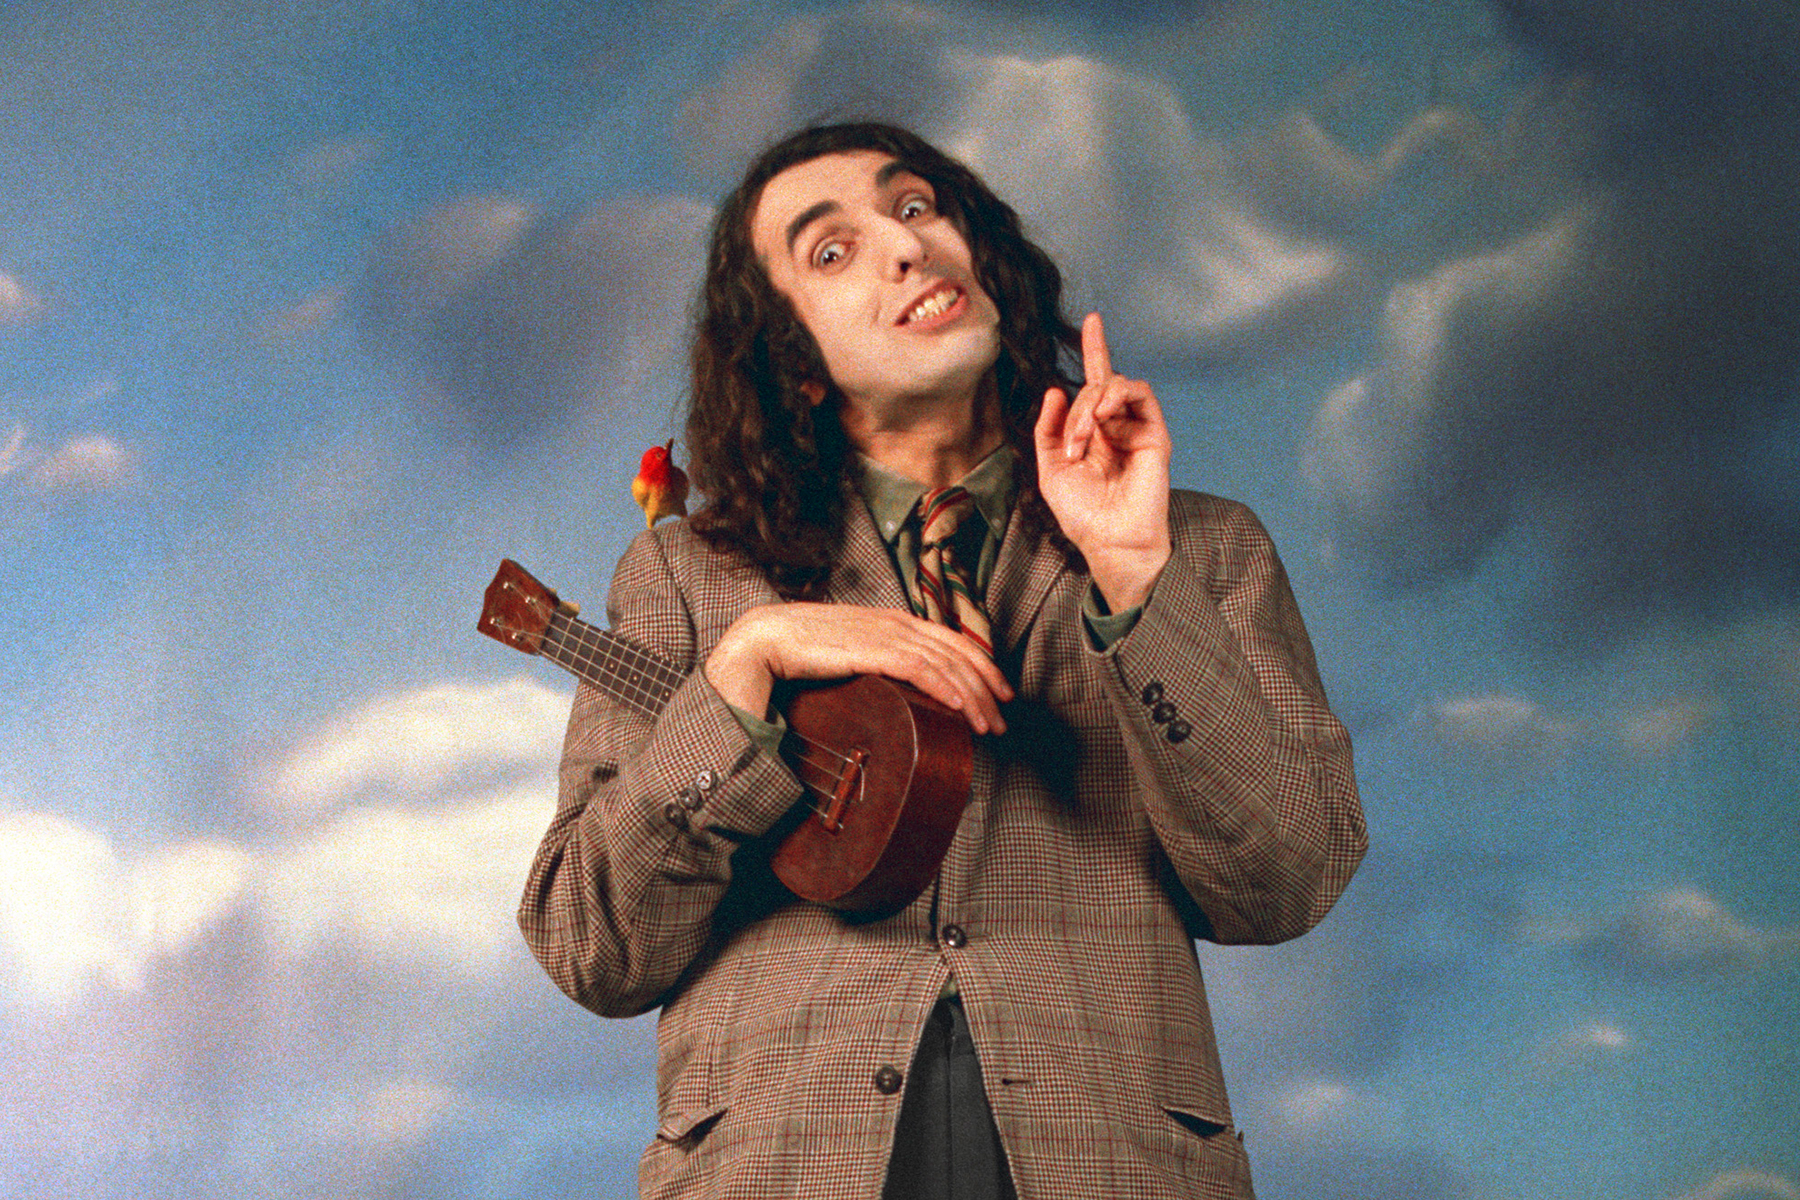 'Weird Al' Yankovic Reads Tiny Tim's Diary Entries in Doc Trailer